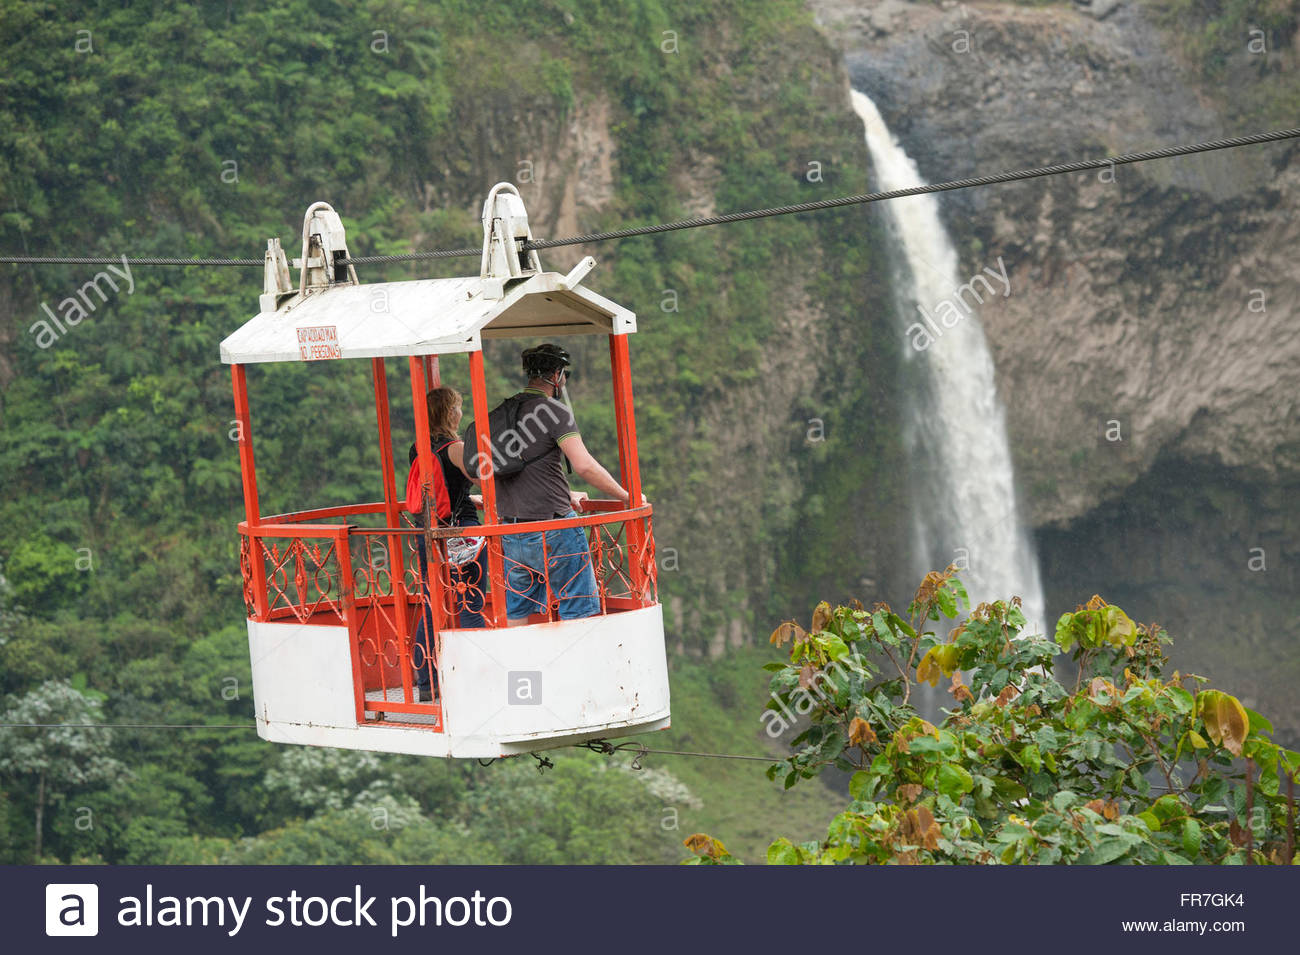 Banos Ecuador Transport across the valley on aerial runways transporting goods and people. - Stock Image